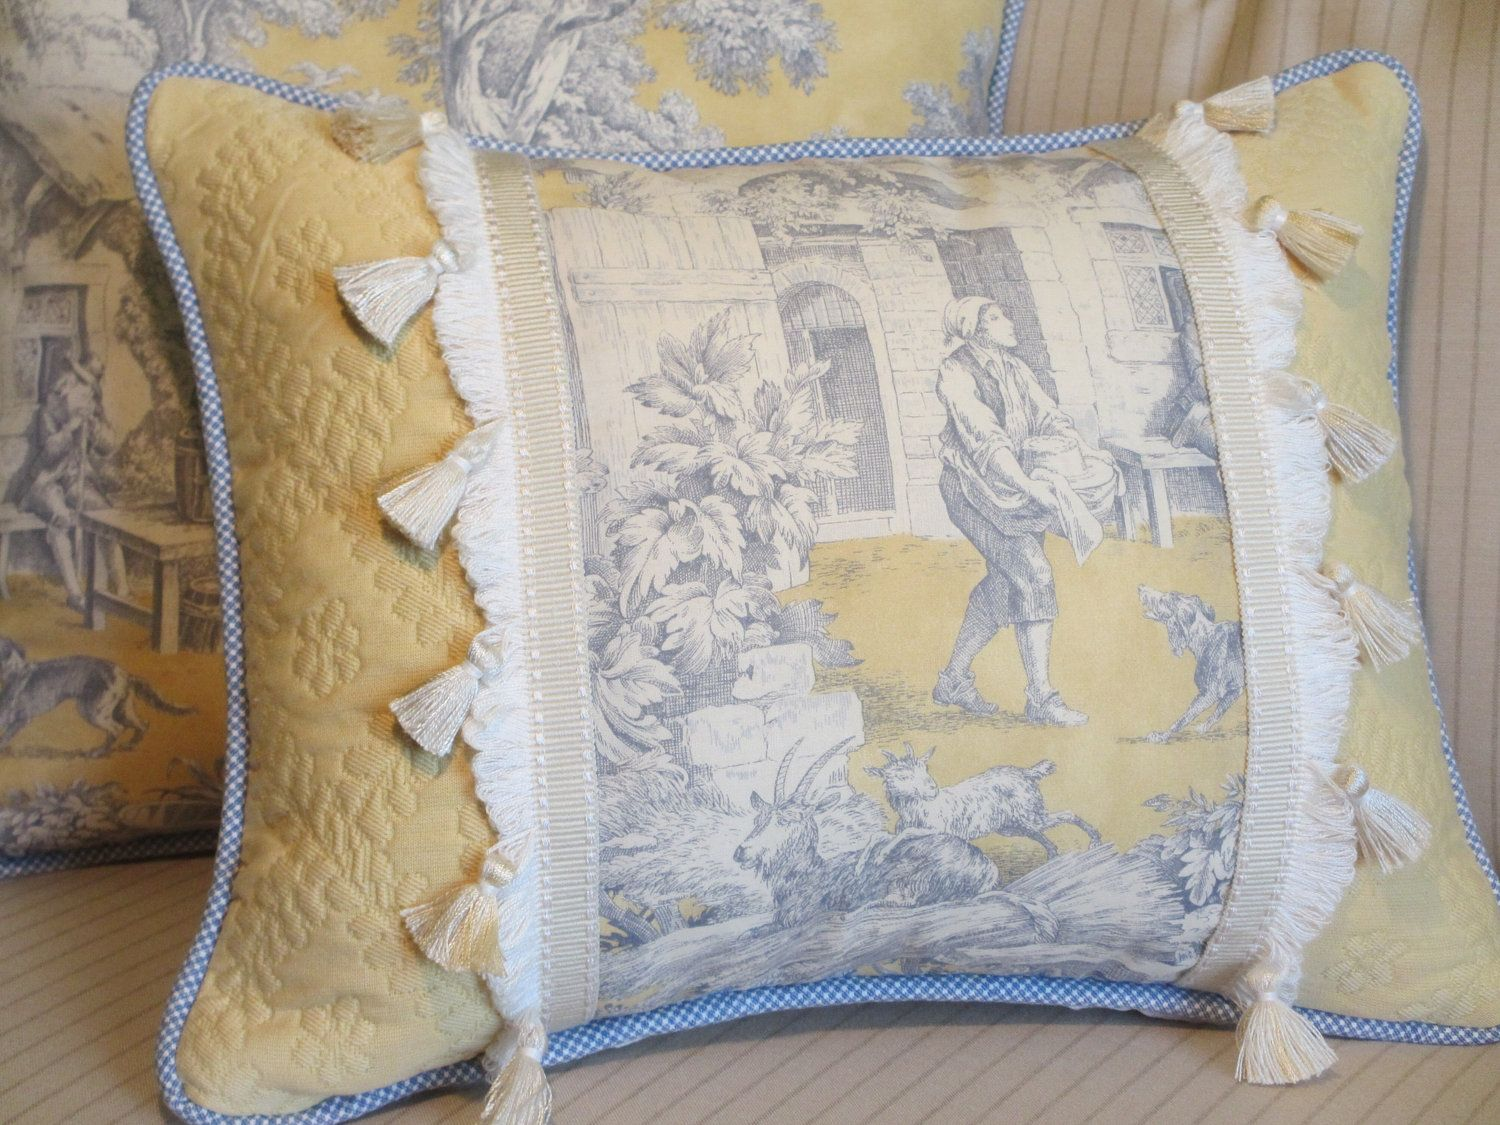 Toile French Country Pillow Cover, Blue and Yellow Decorative Throw Pillow Cover, Tassel Fringe ...